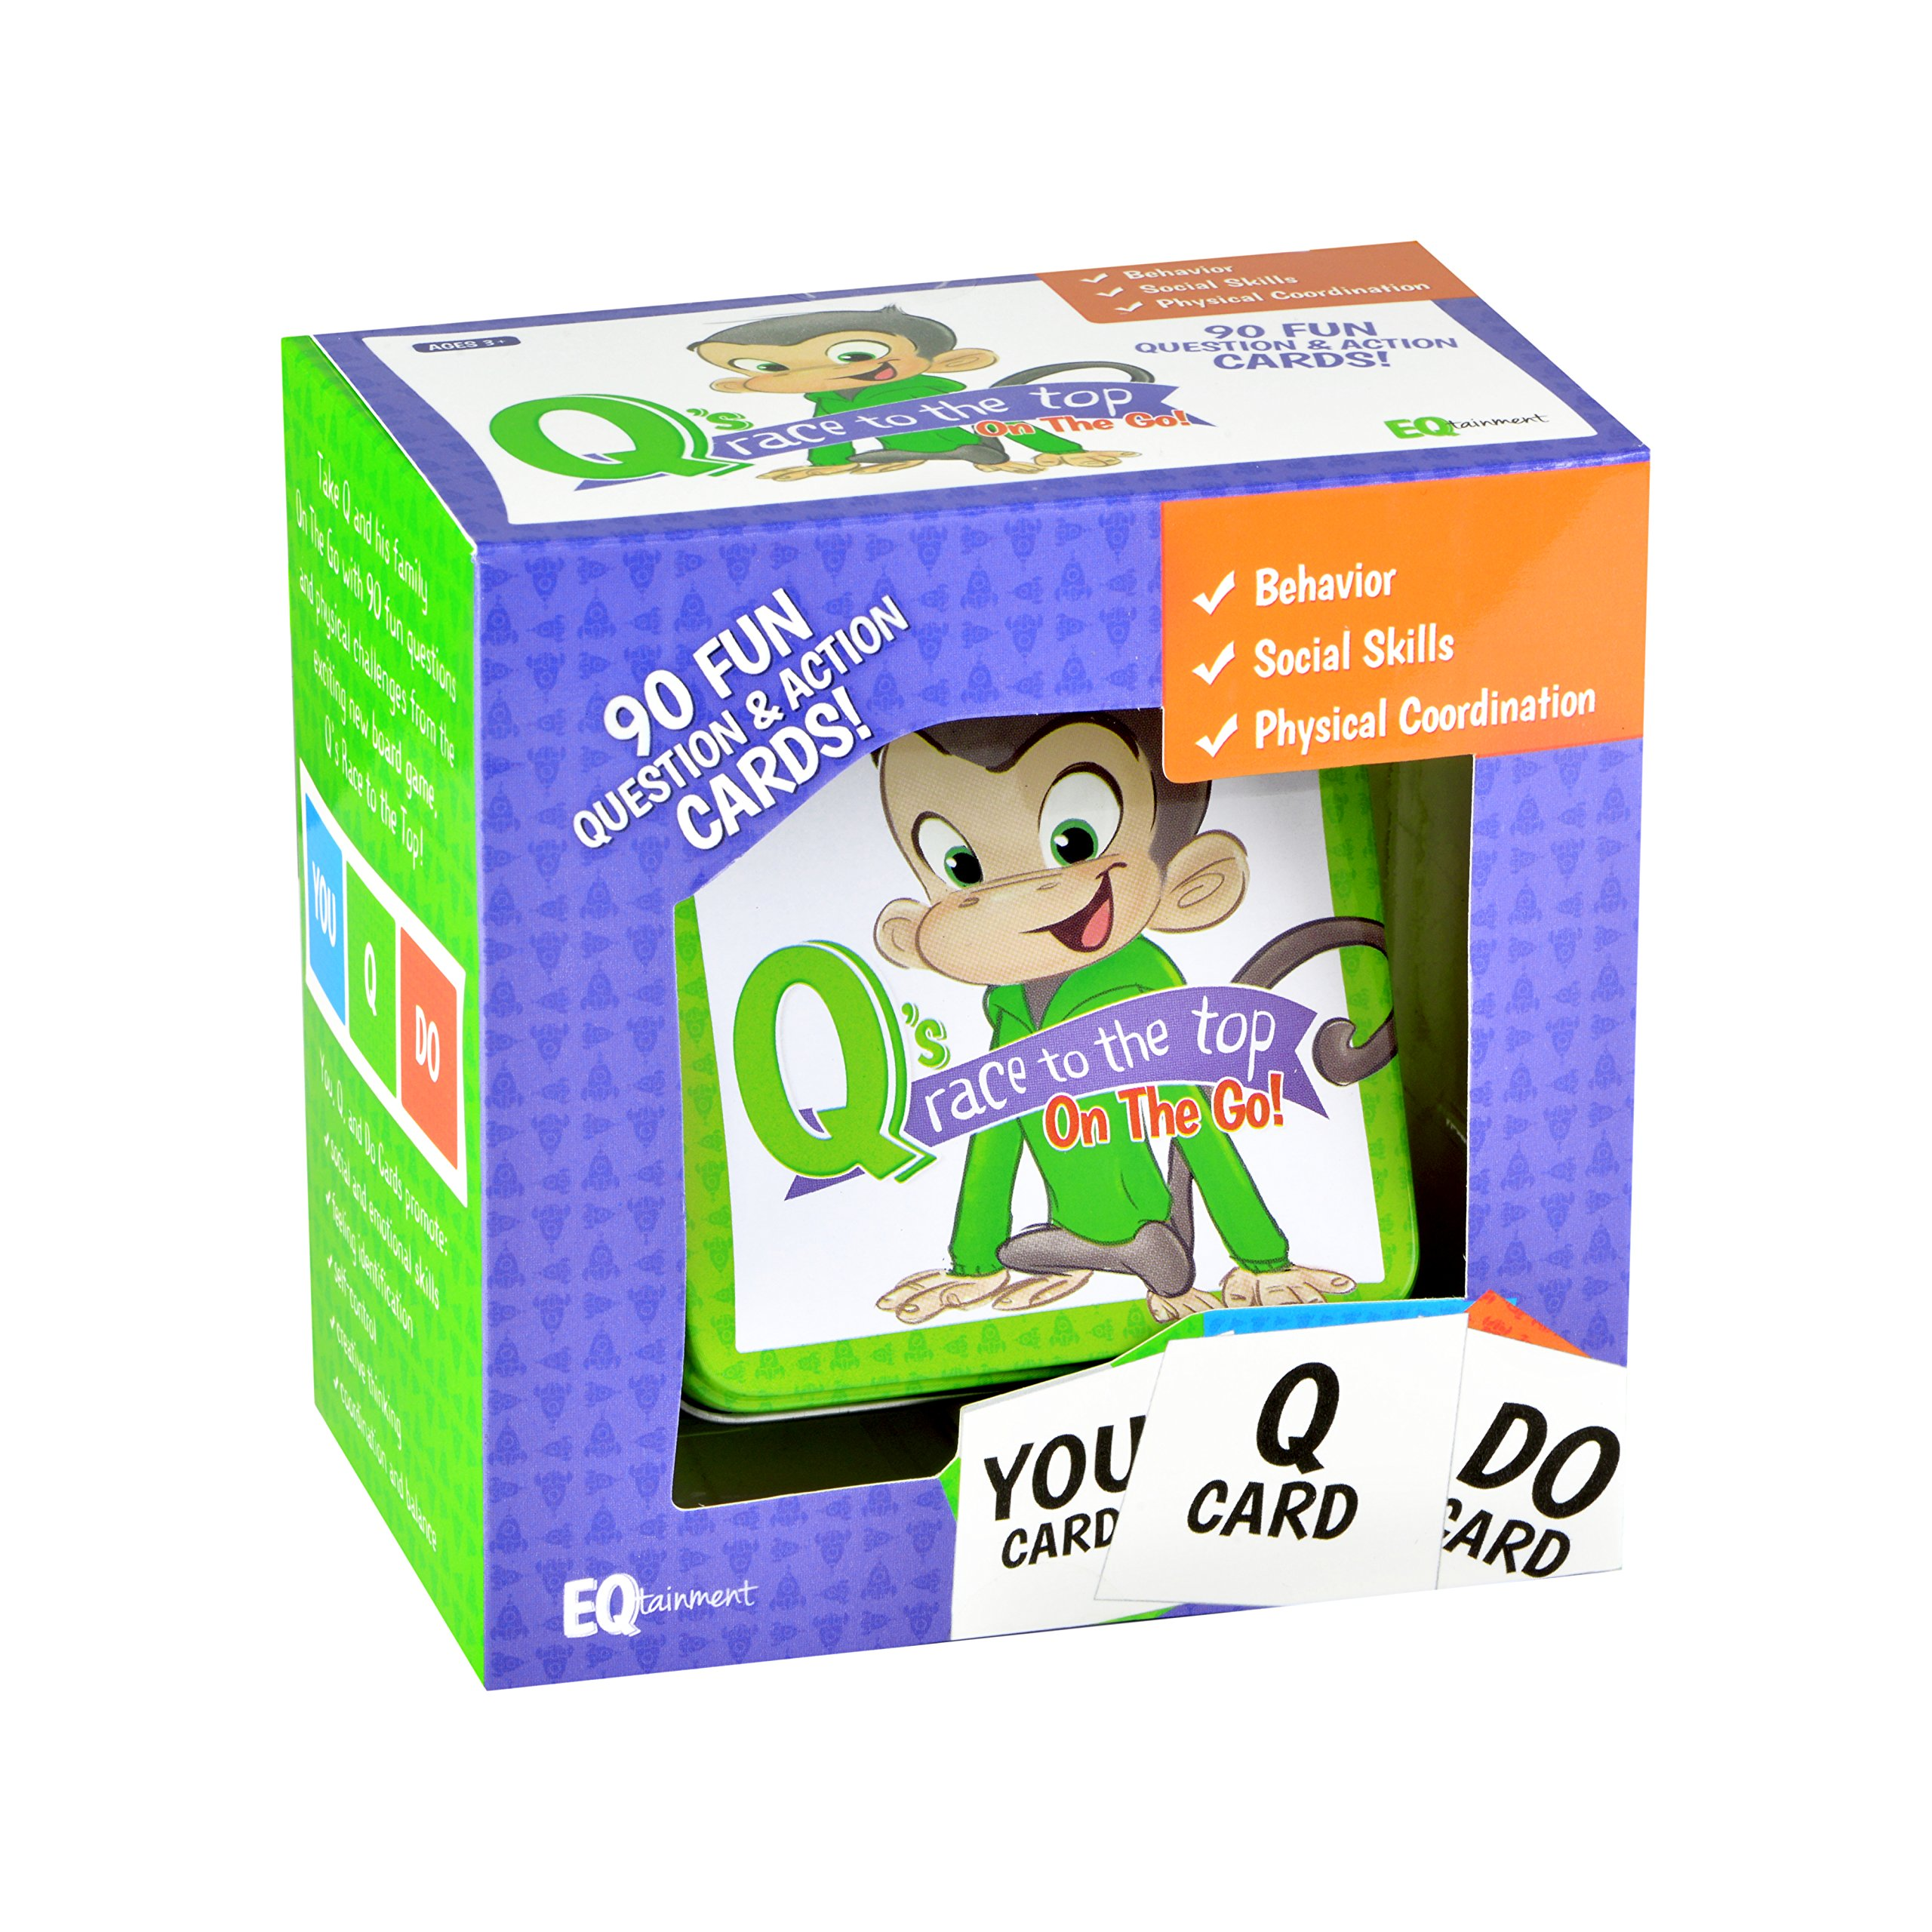 EQtainment Q's Race to The Top On-The-Go Pack: Fun Questions and Activities for Practicing Social Skills, Manners, and Emotional Control! by EQtainment